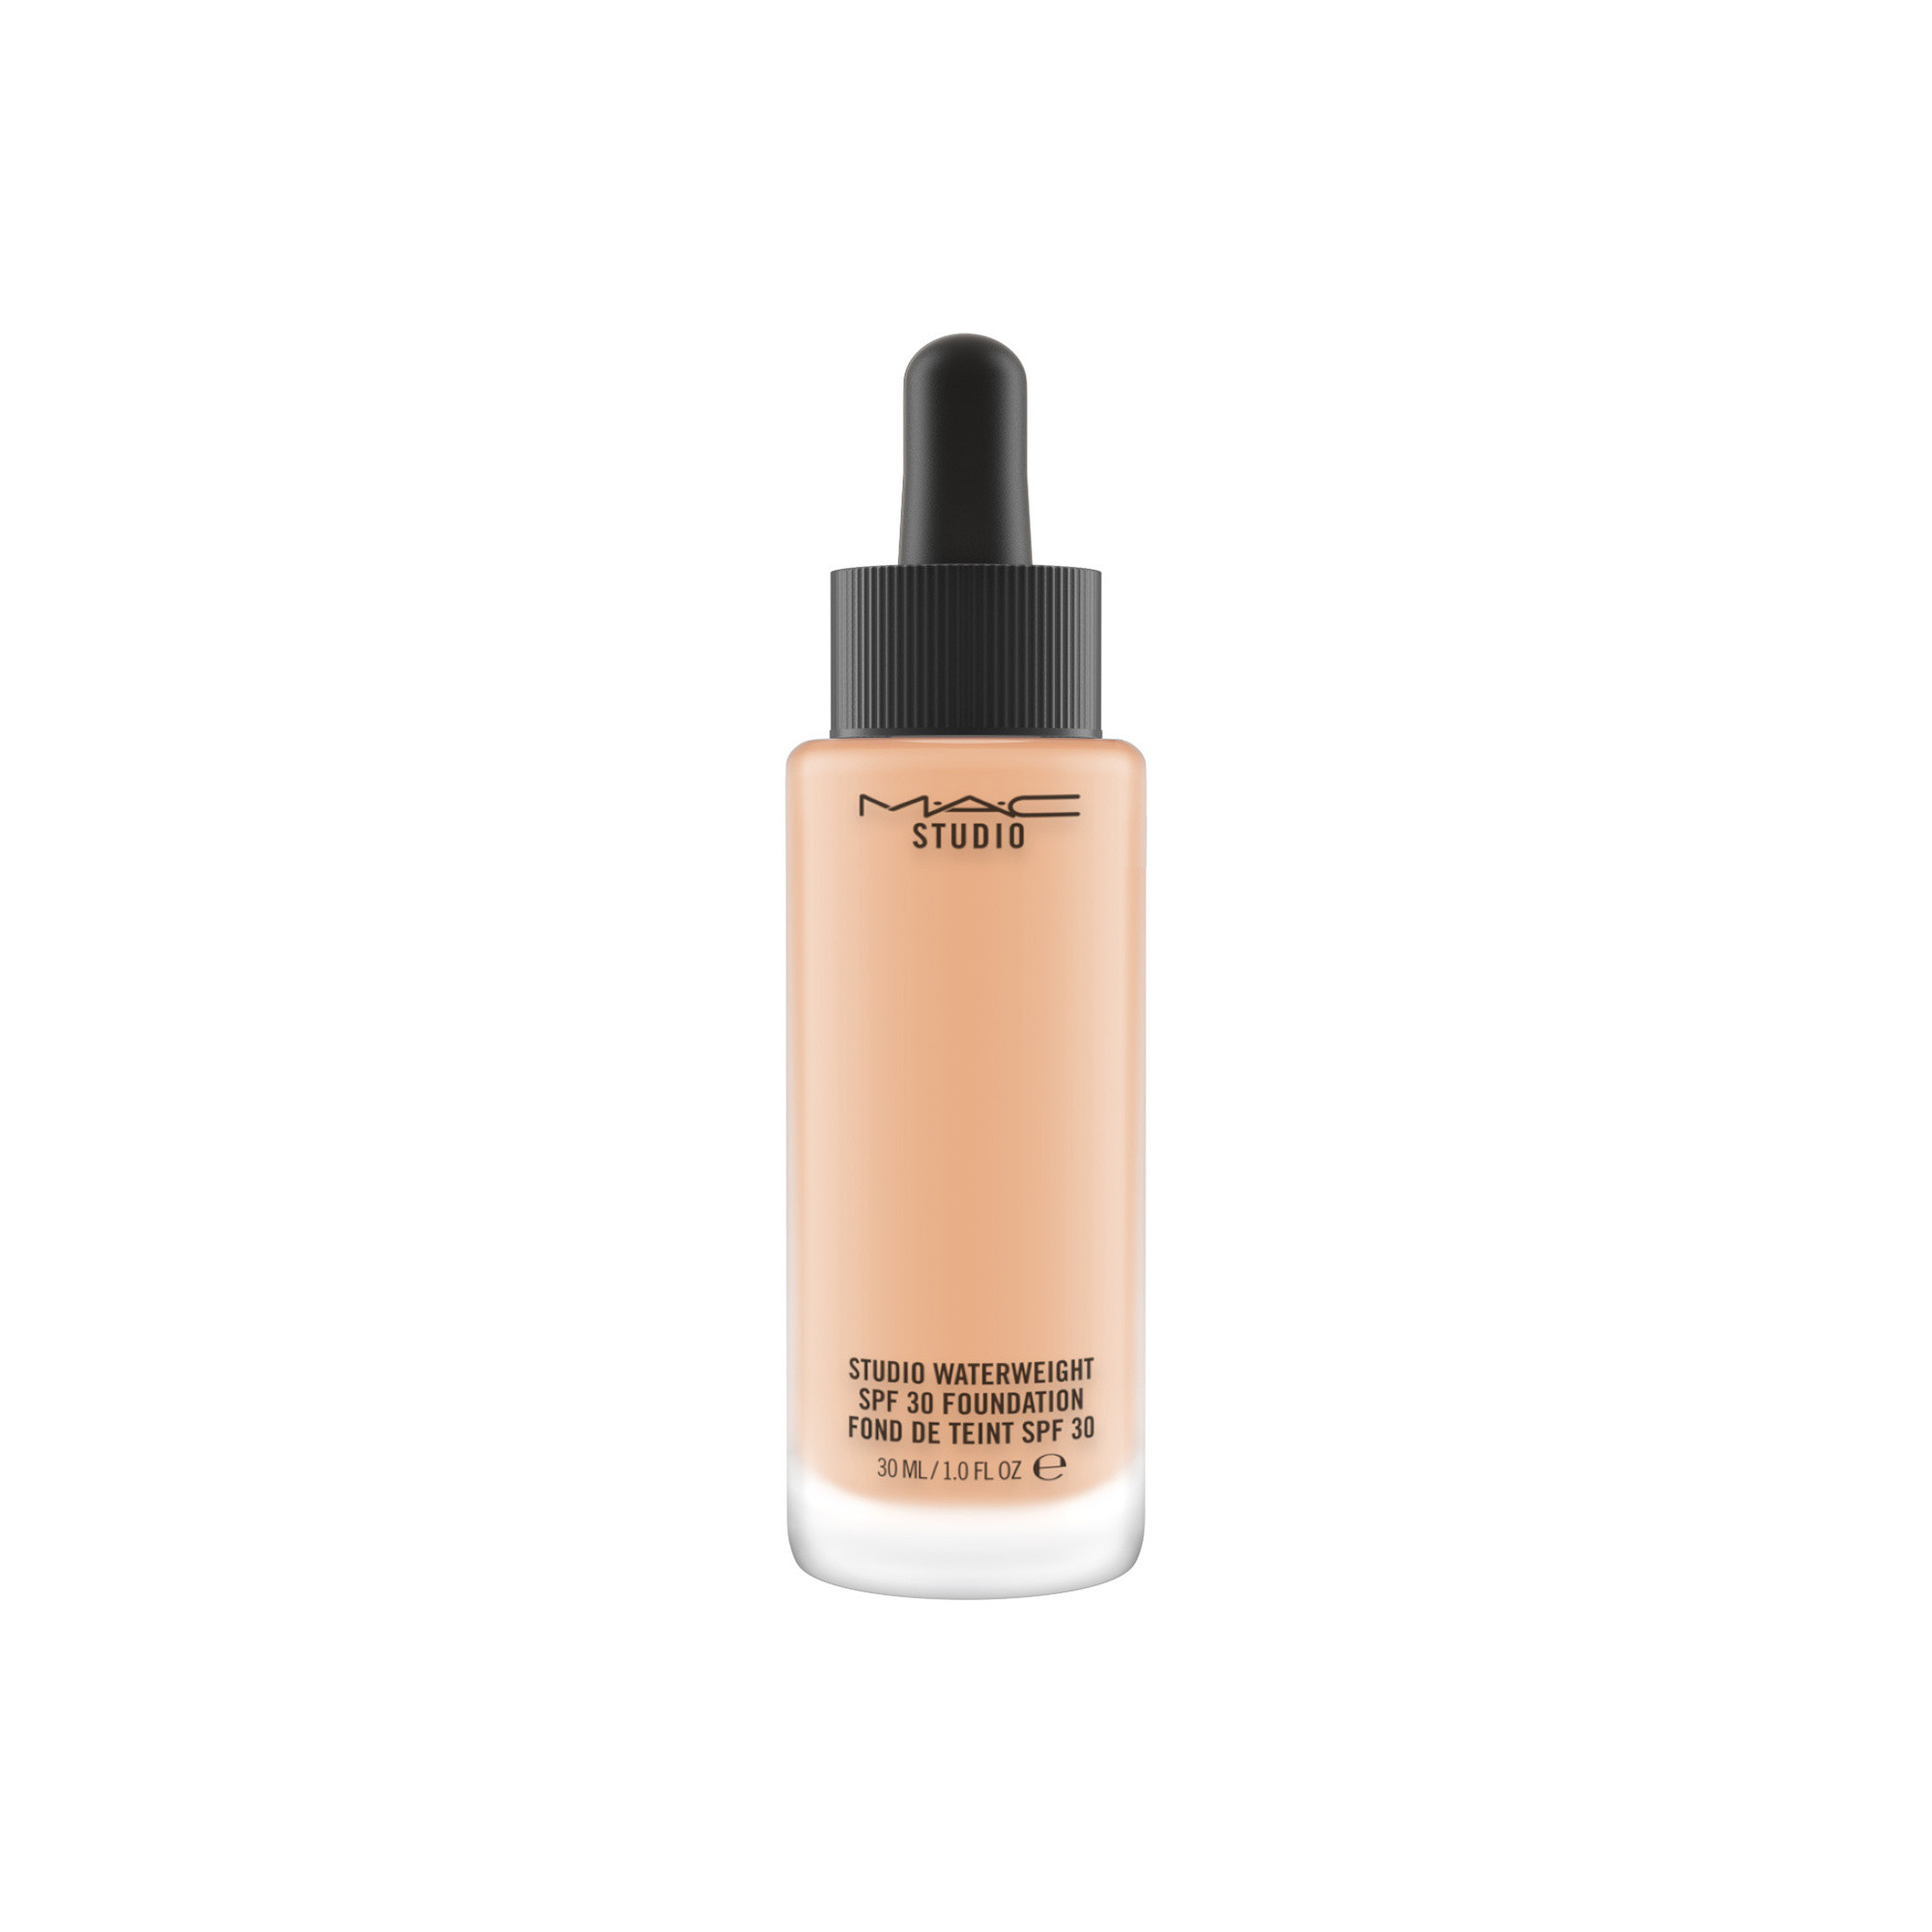 Studio Waterweight Foundation Spf30 - NC35, NC35, large image number 1